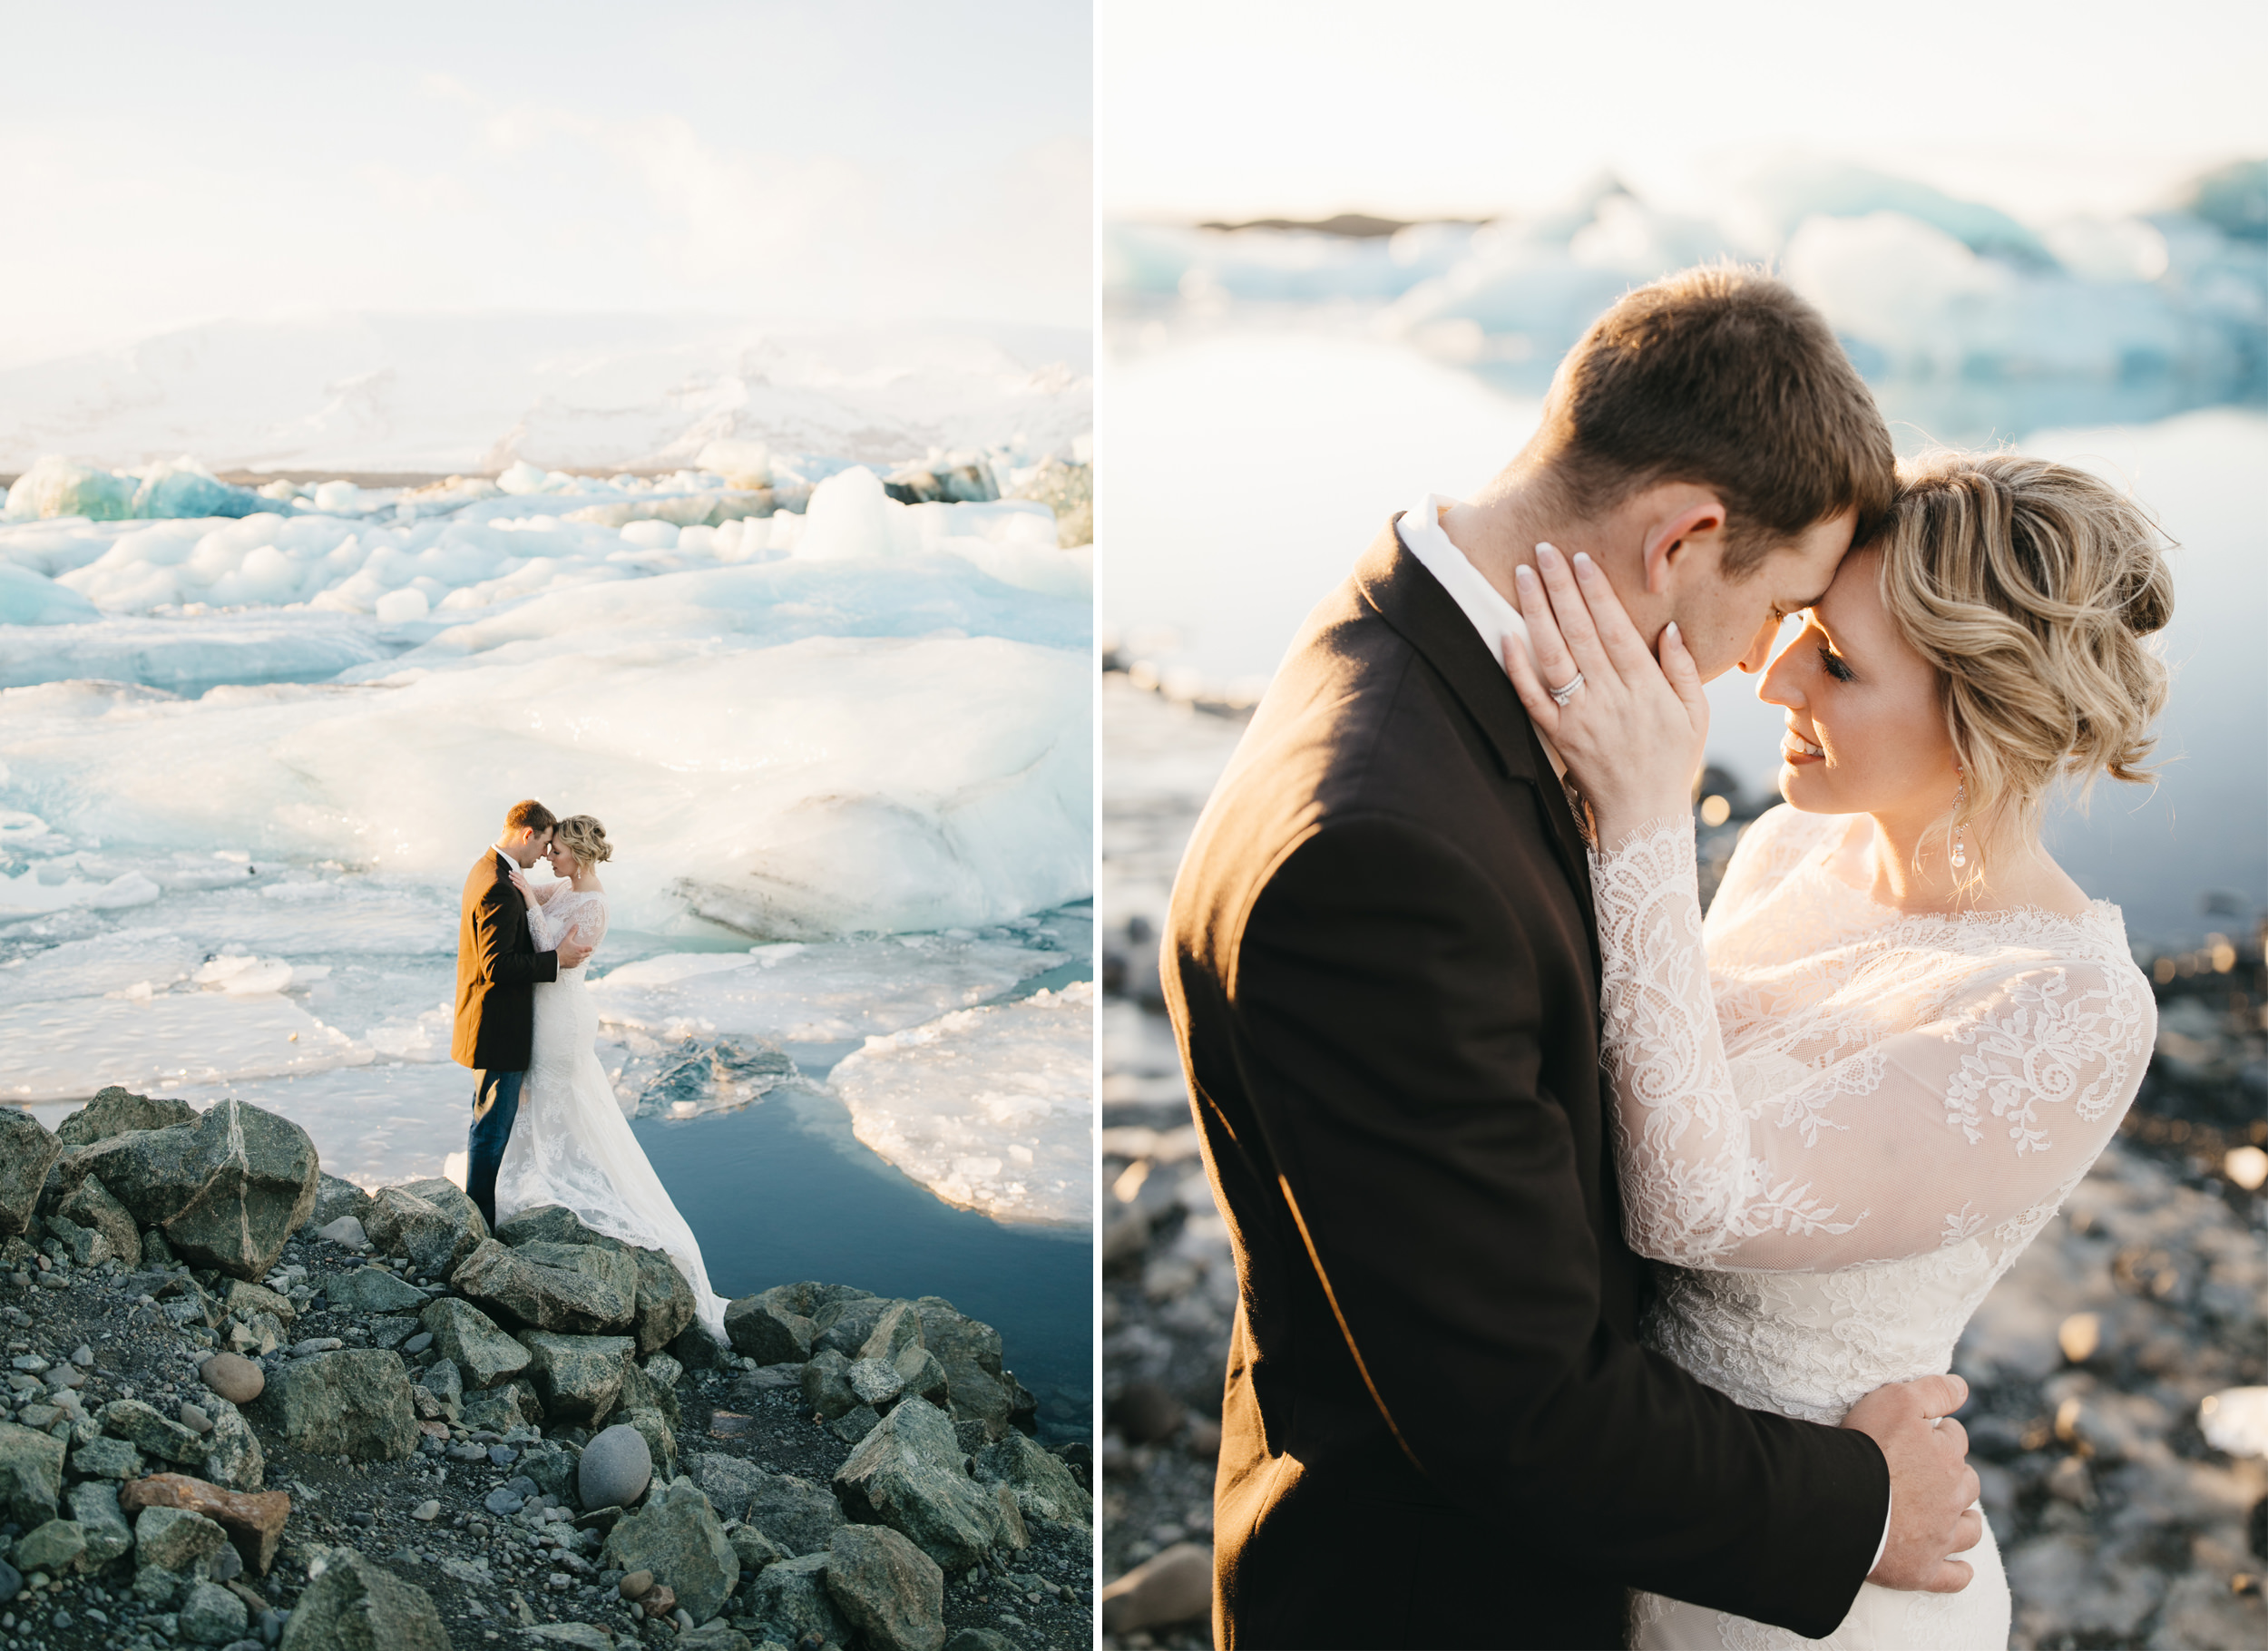 A couple snuggles for warmth next to glaciers during Iceland Elopement Photography Session by colby and jess.